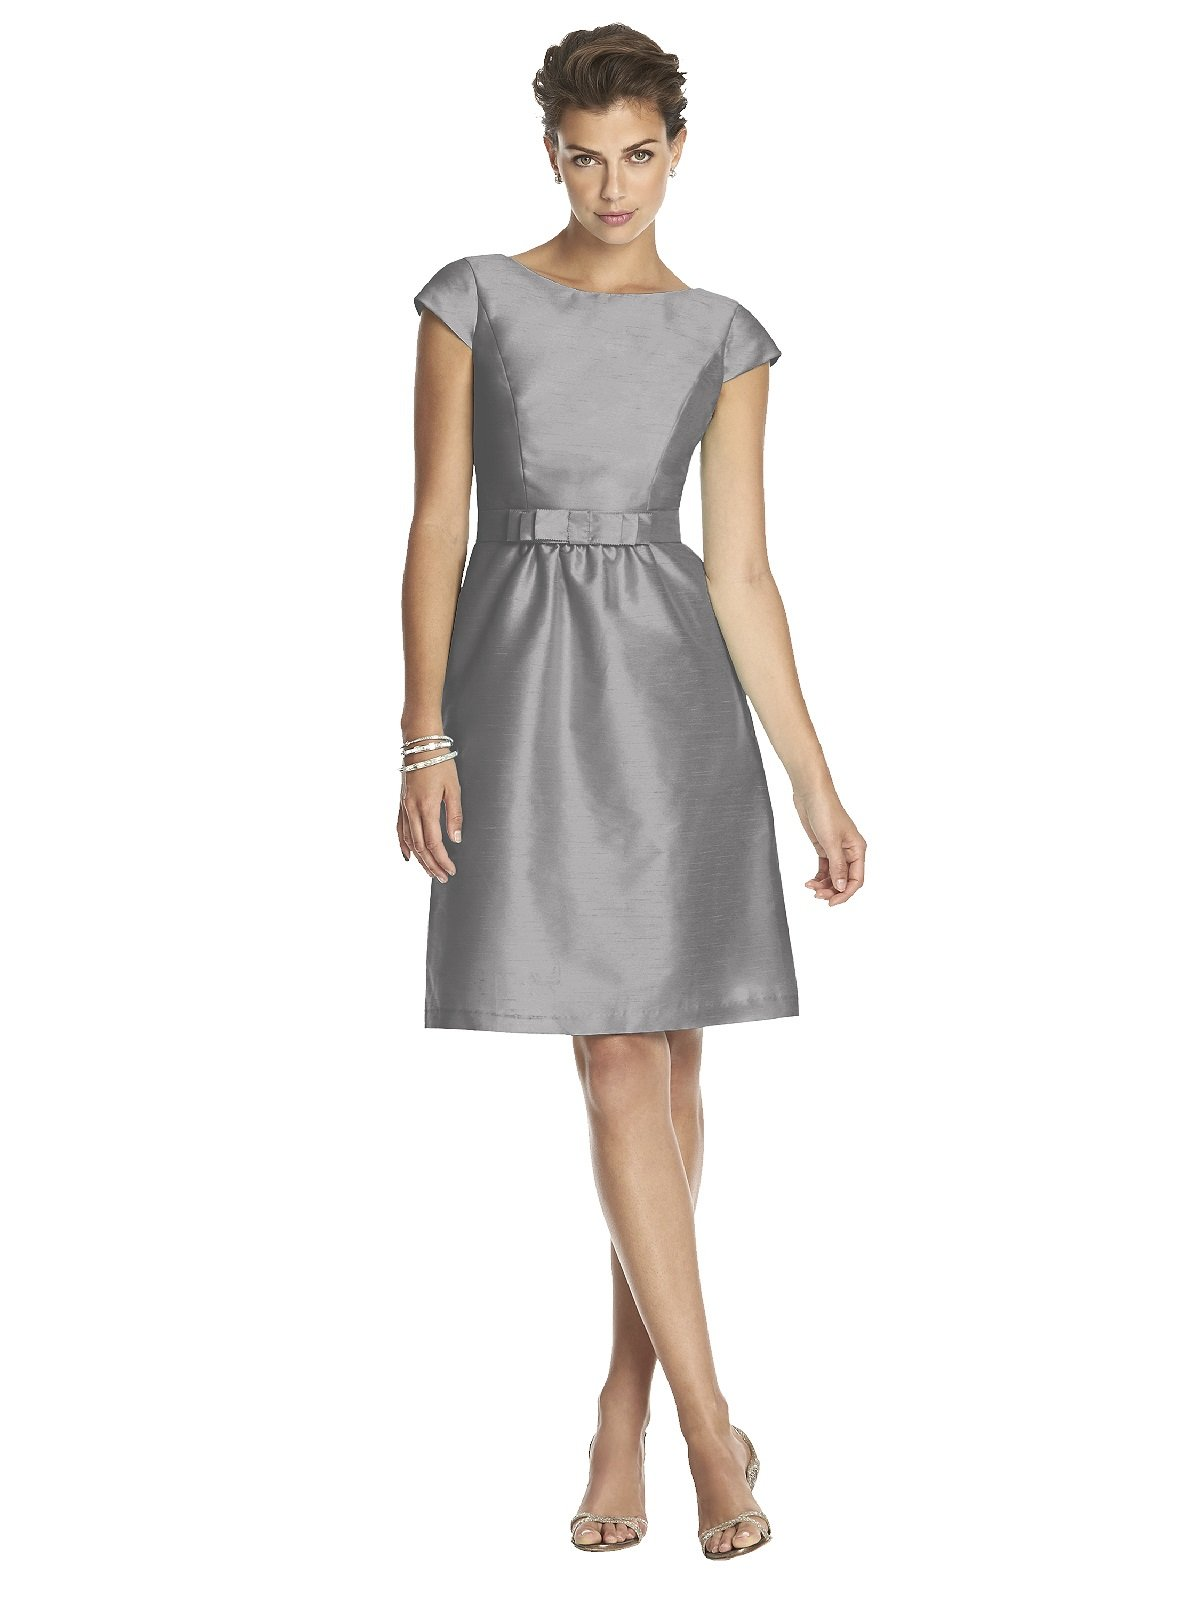 Women's Cocktail Length Dupioni Bateau Neck Dress with Bow by Alfred Sung - Quarry - Size 2 by Forever